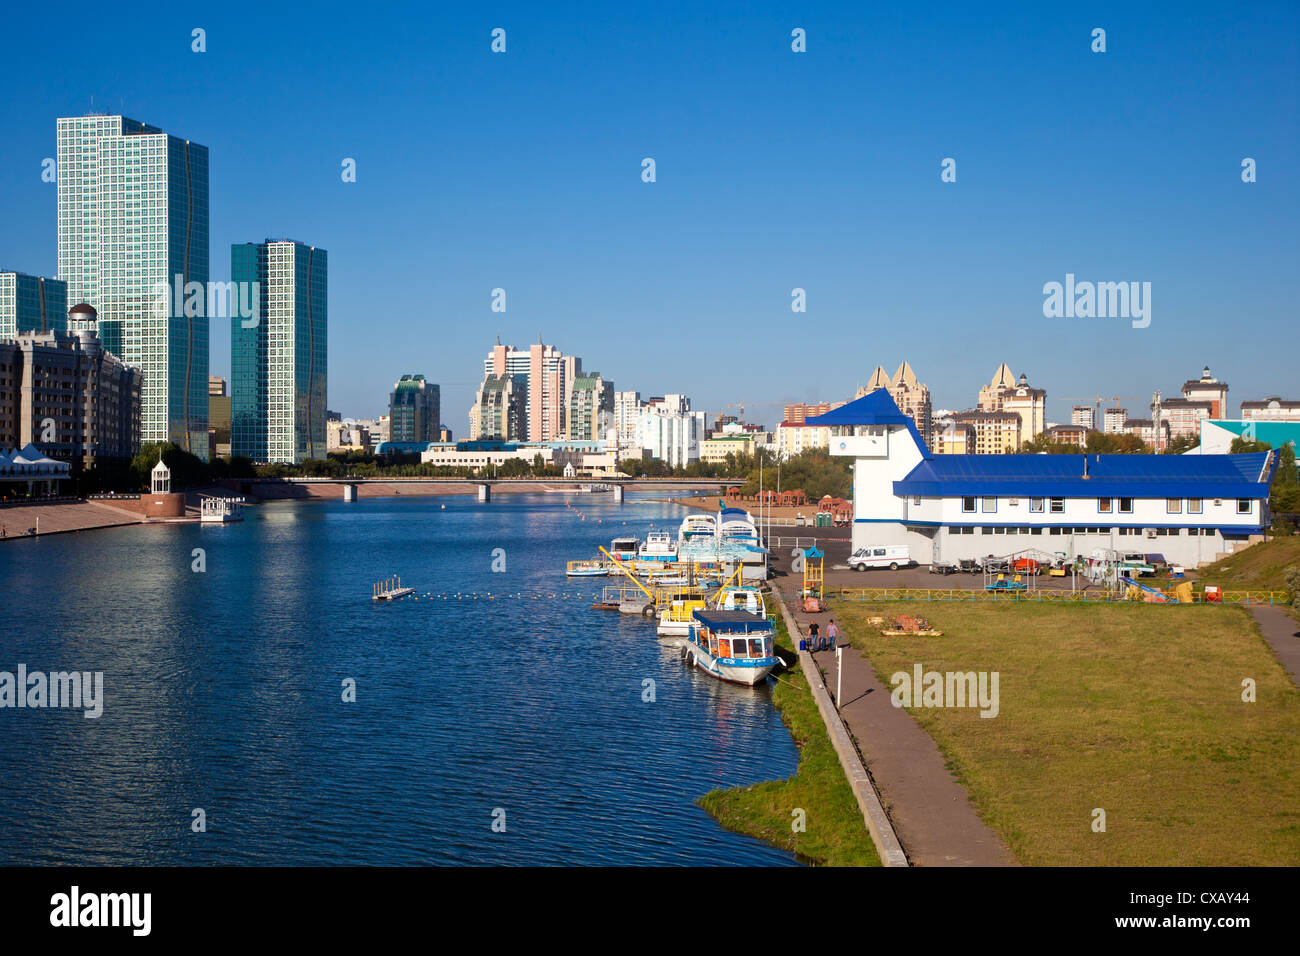 View of Ishim River, Astana, Kazakhstan, Central Asia, Asia - Stock Image